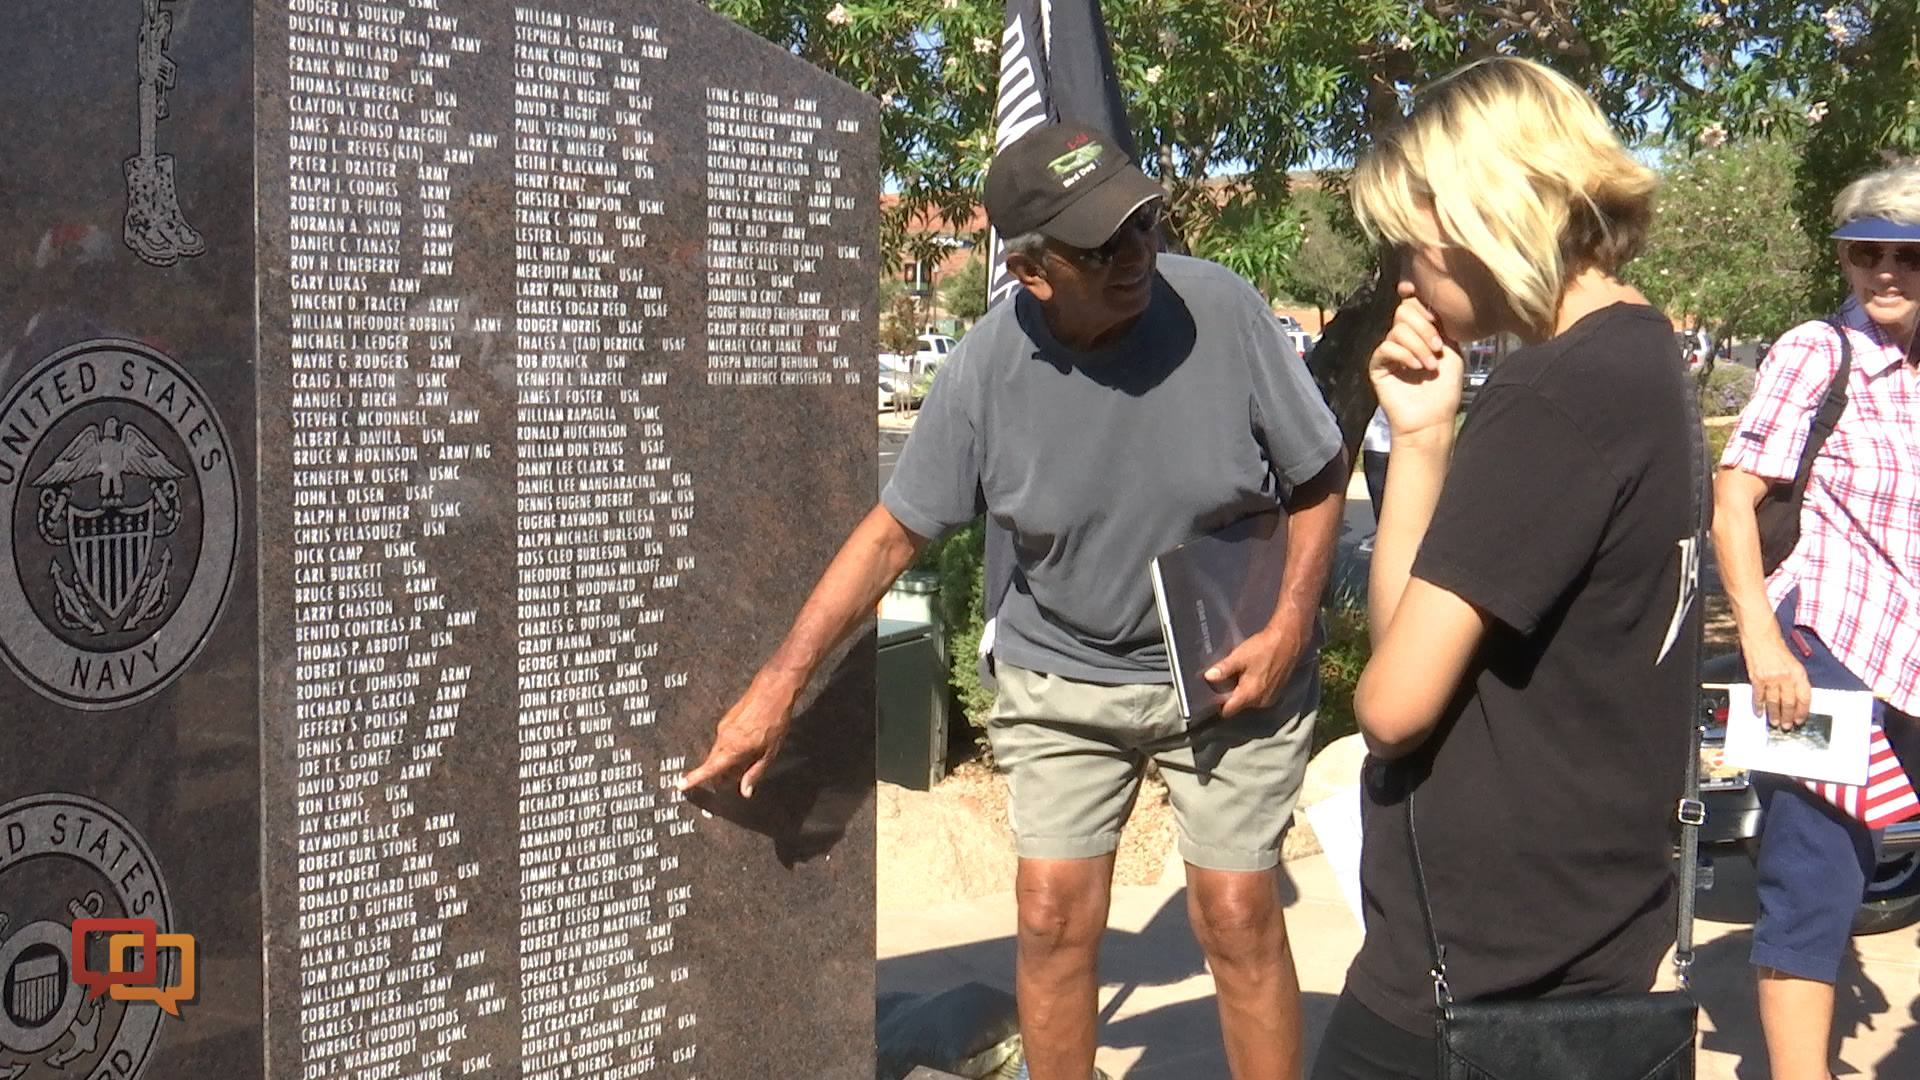 A veteran points to a name on the Vietnam Veterans monument following the Vietnam Veterans Monument dedicatory ceremony at Zion Harley Davidson, Washington City, Utah, September 10, 2016 | Photo by Sheldon Demke, St. George News